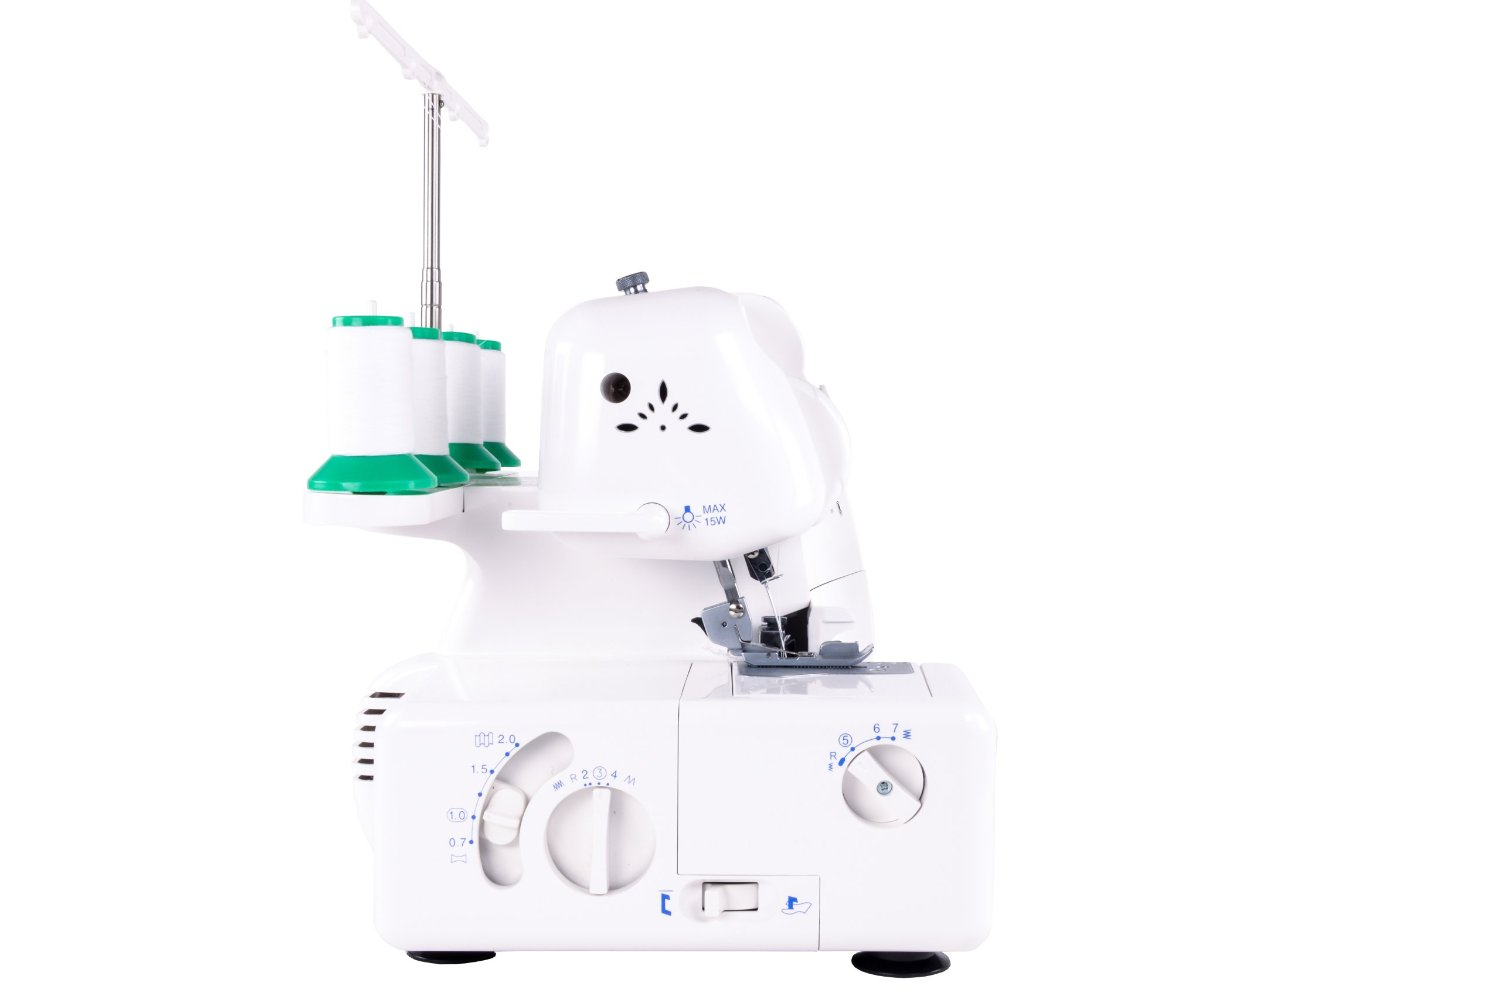 Gritzner 788 Overlock mit LED-Beleuchtung